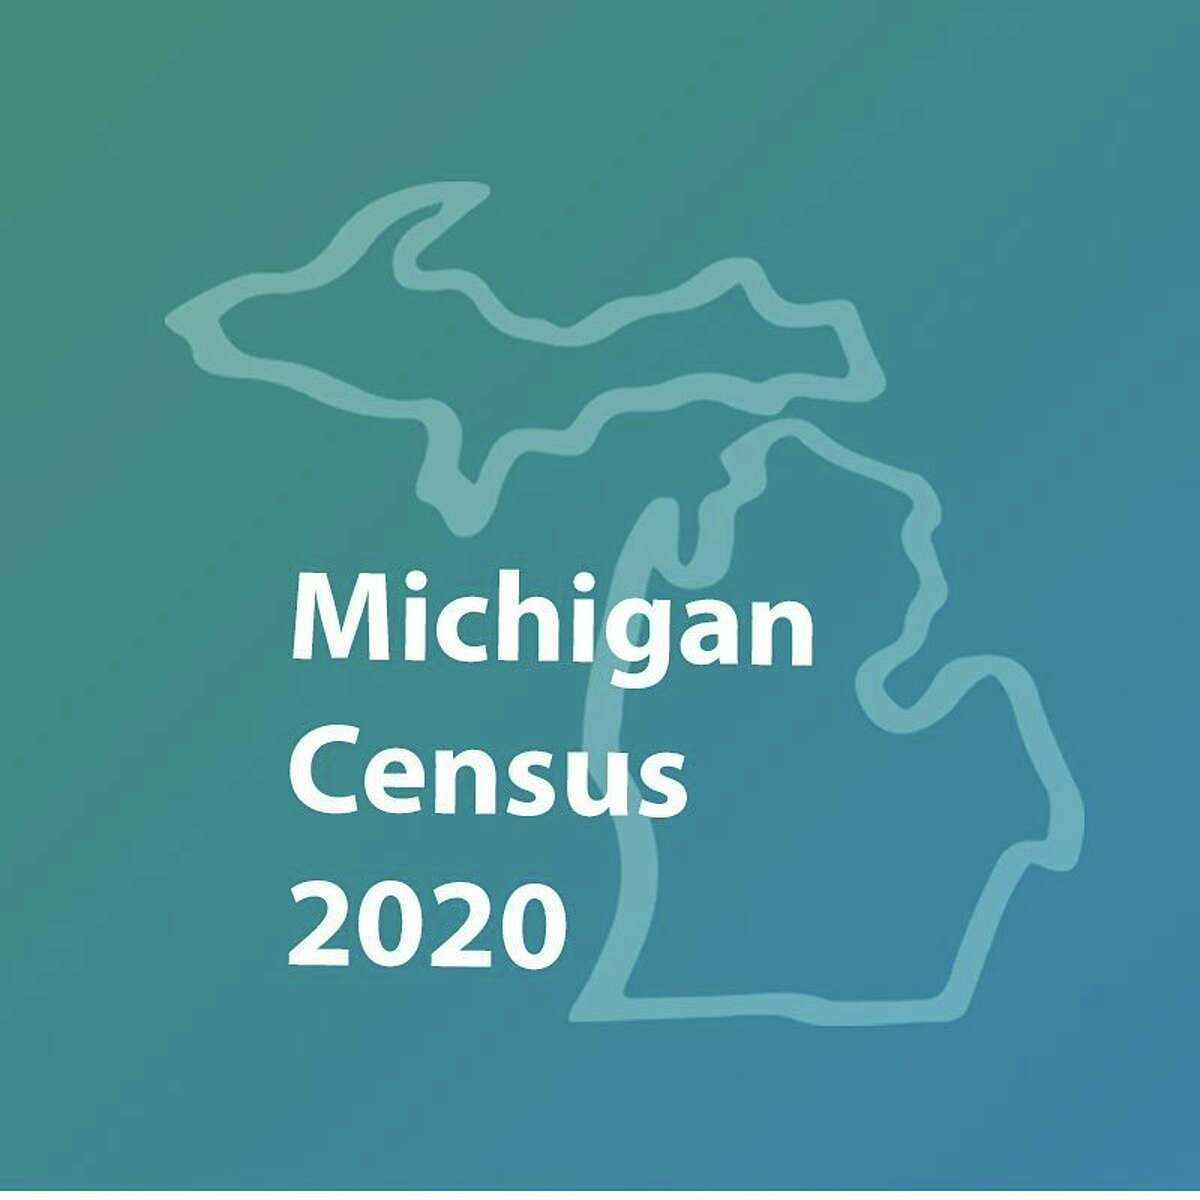 The deadline to complete the 2020 Census is Sept. 30. An accurate Census count is criticalin determining state and federal funding dollars received in the community for the next ten years. Go to 2020census.gov. (Courtesy photo/2020census.gov)